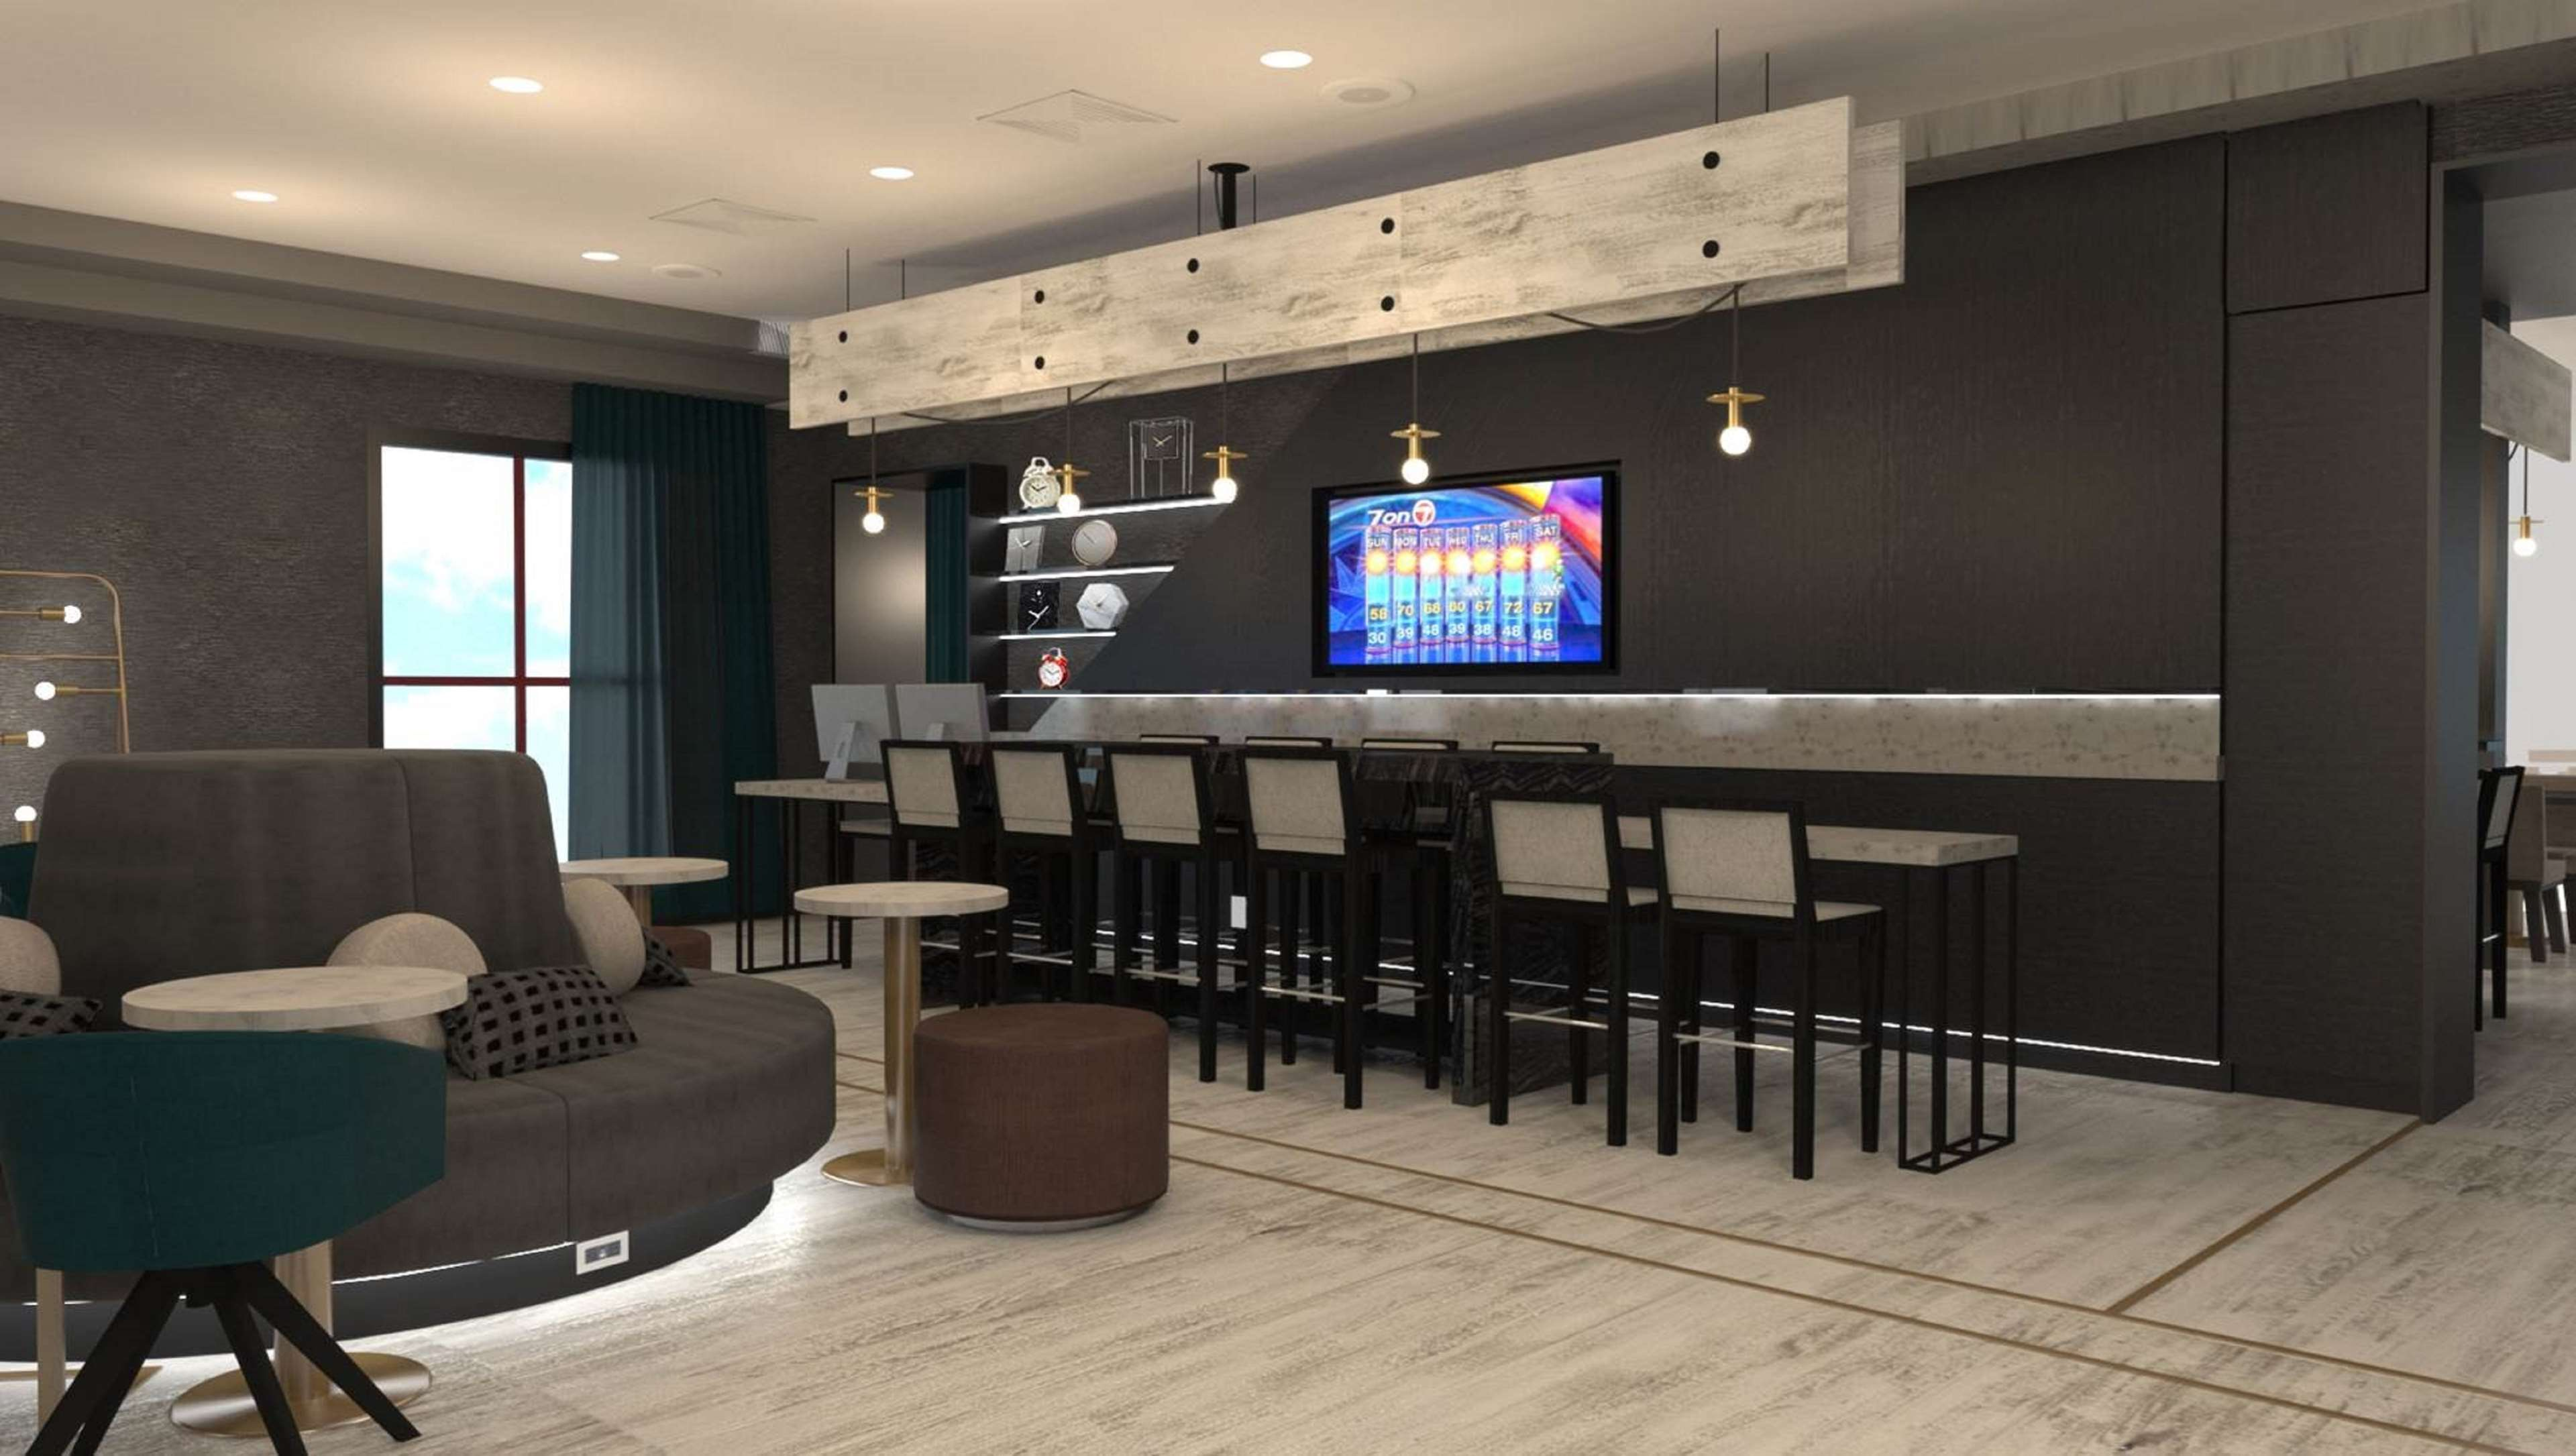 DoubleTree by Hilton Hotel Bristol, Connecticut image 17